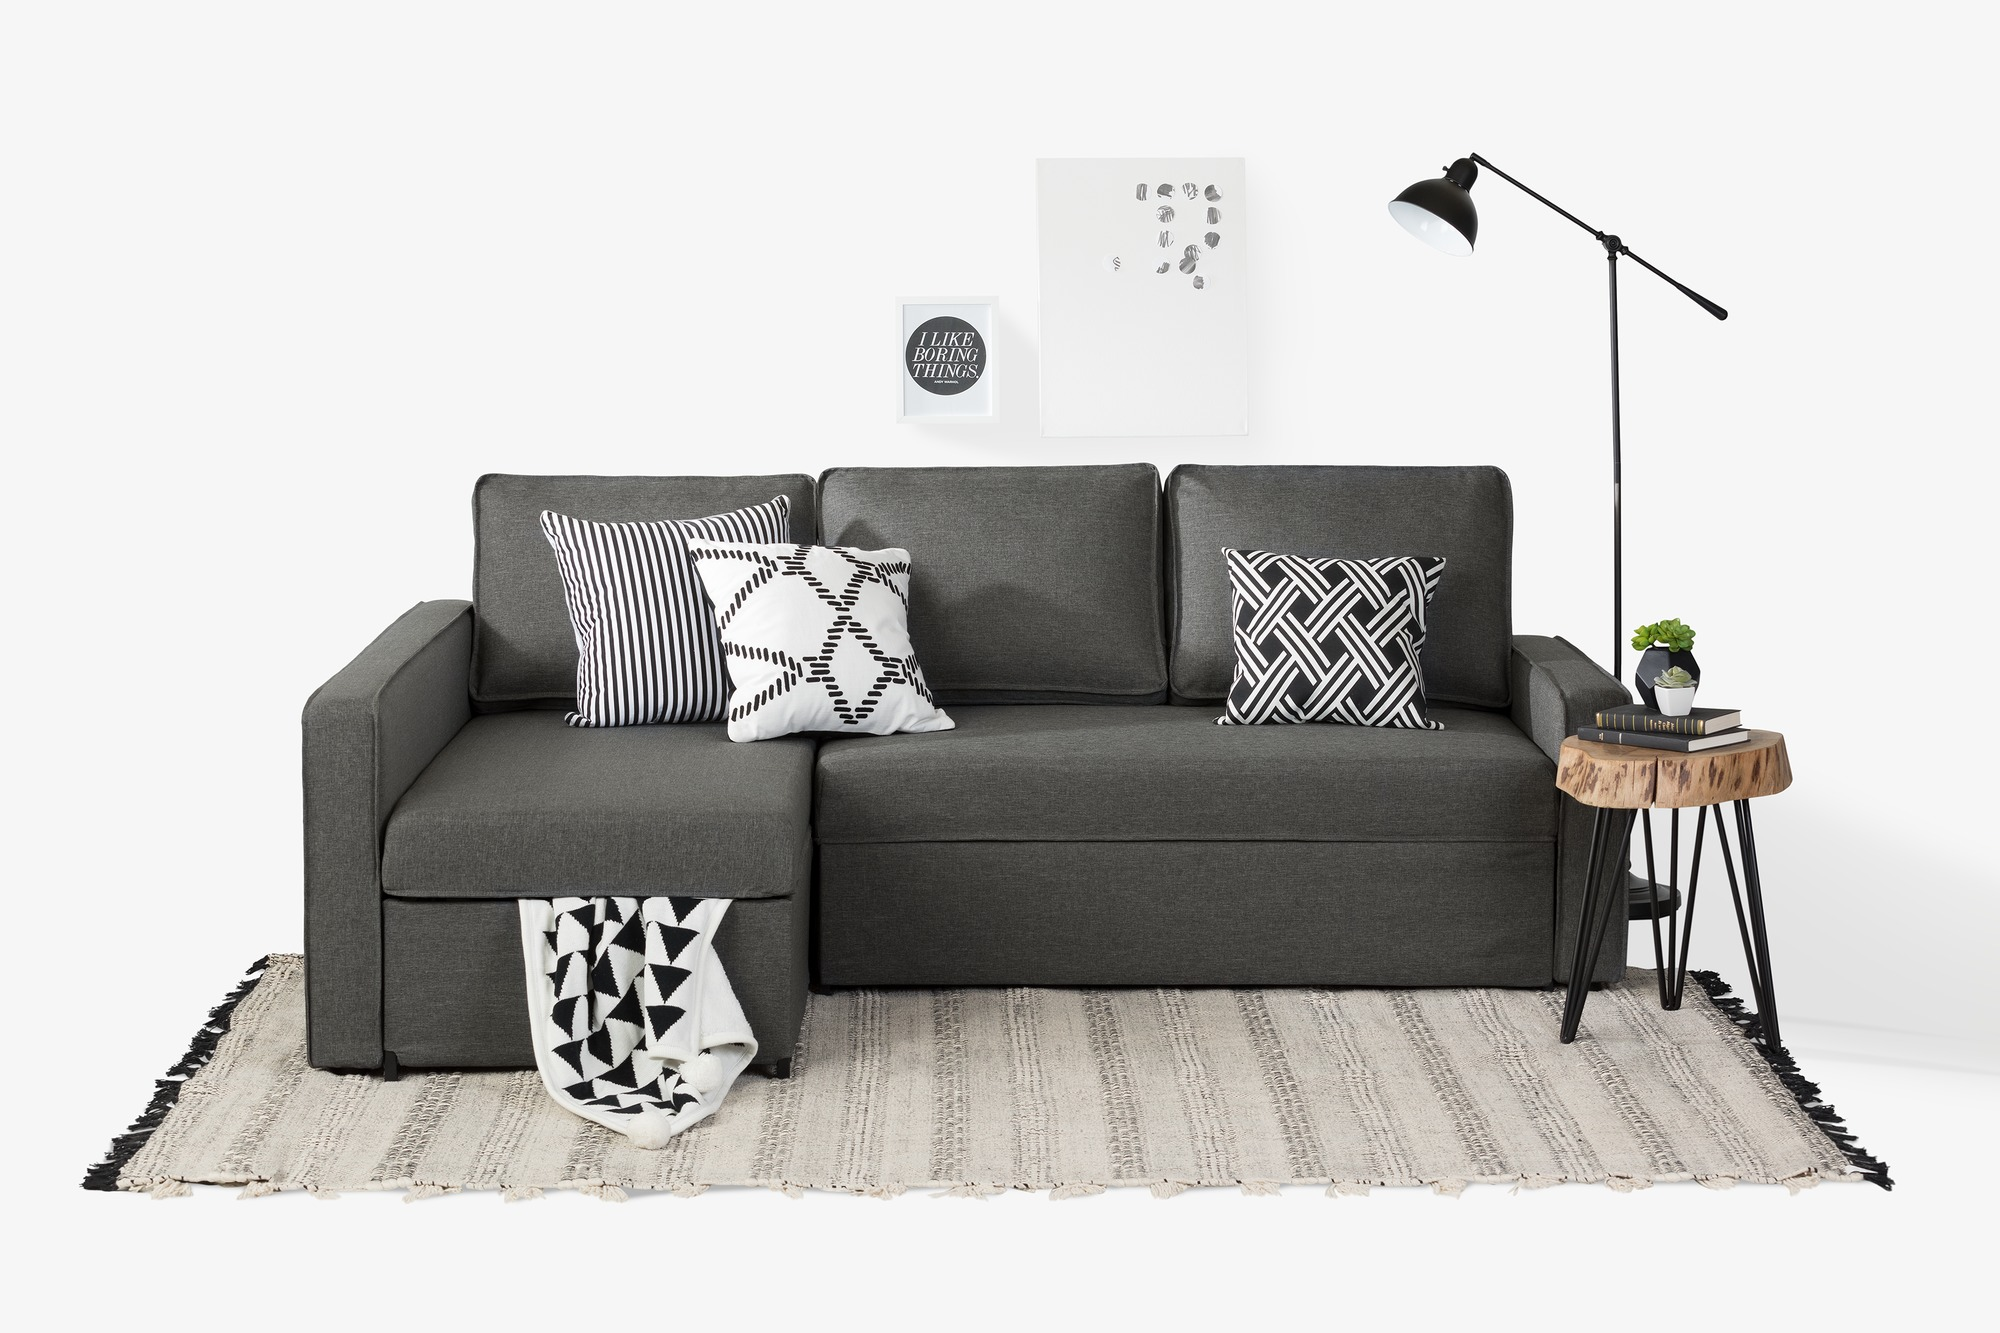 South Shore Live-it Cozy Sectional Sofa-Bed with Storage, Multiple